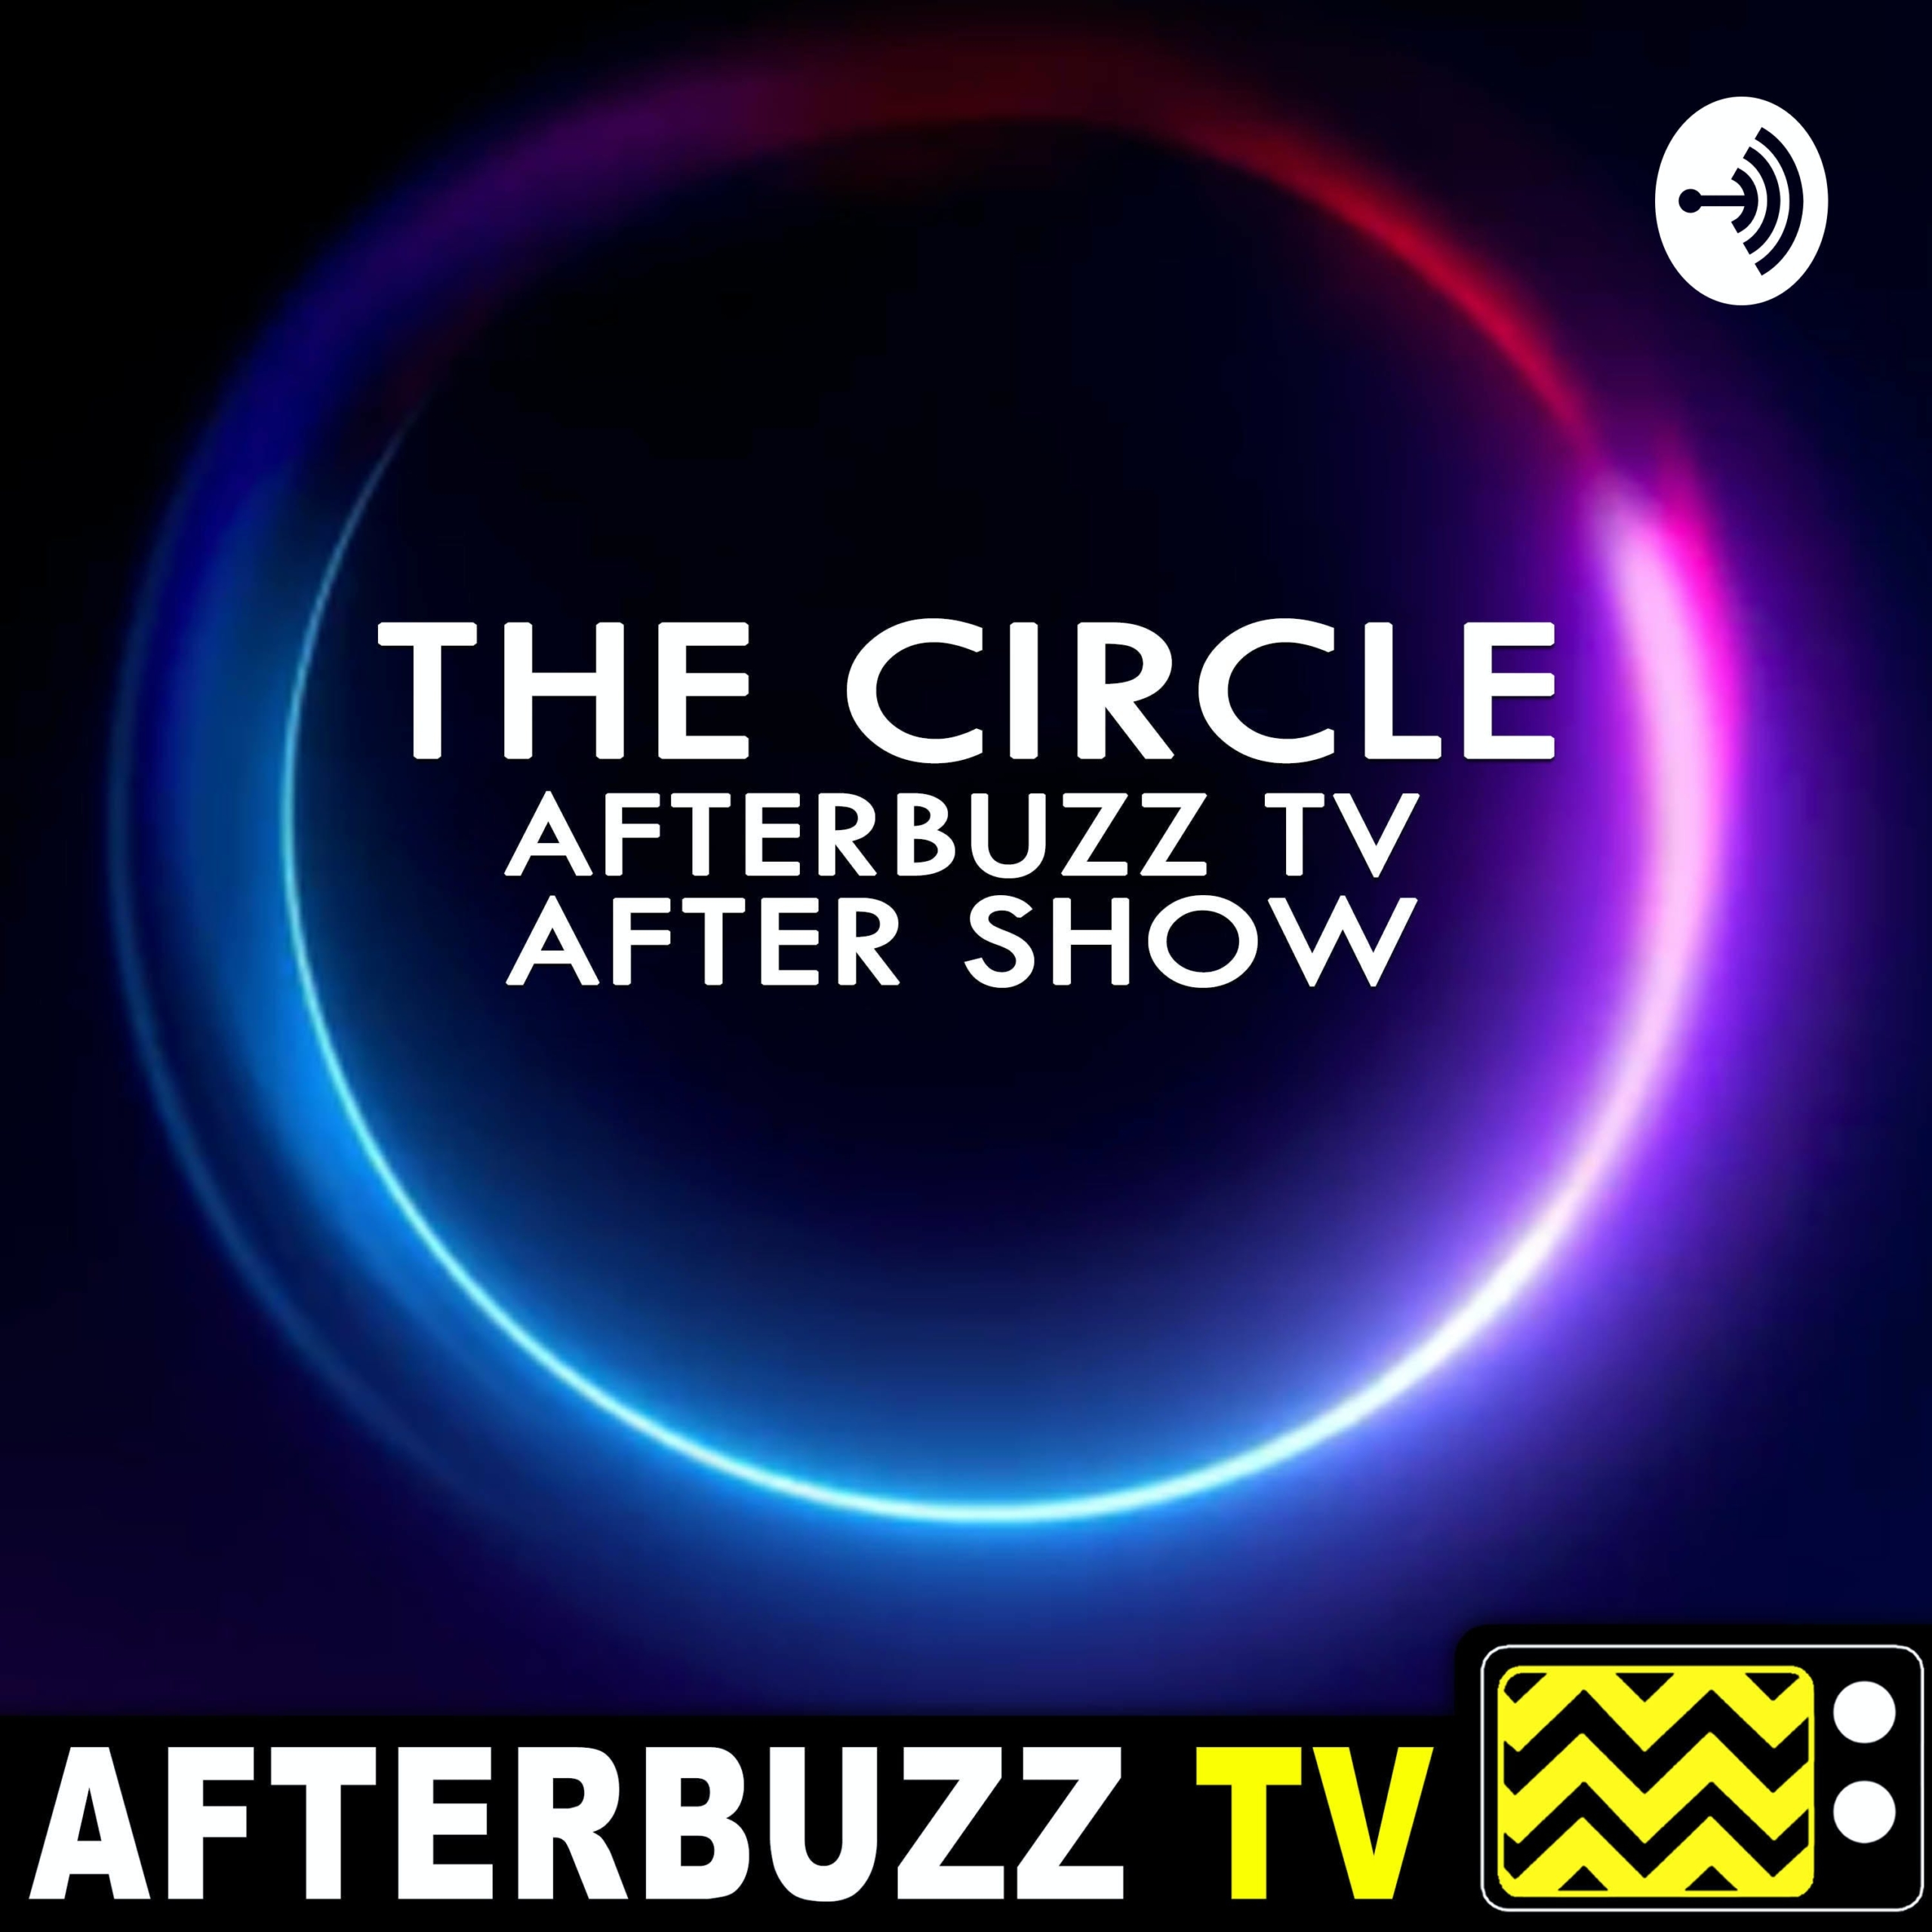 S1 – The Unofficial Reunion of 'The Circle' with the Winner and Contestants